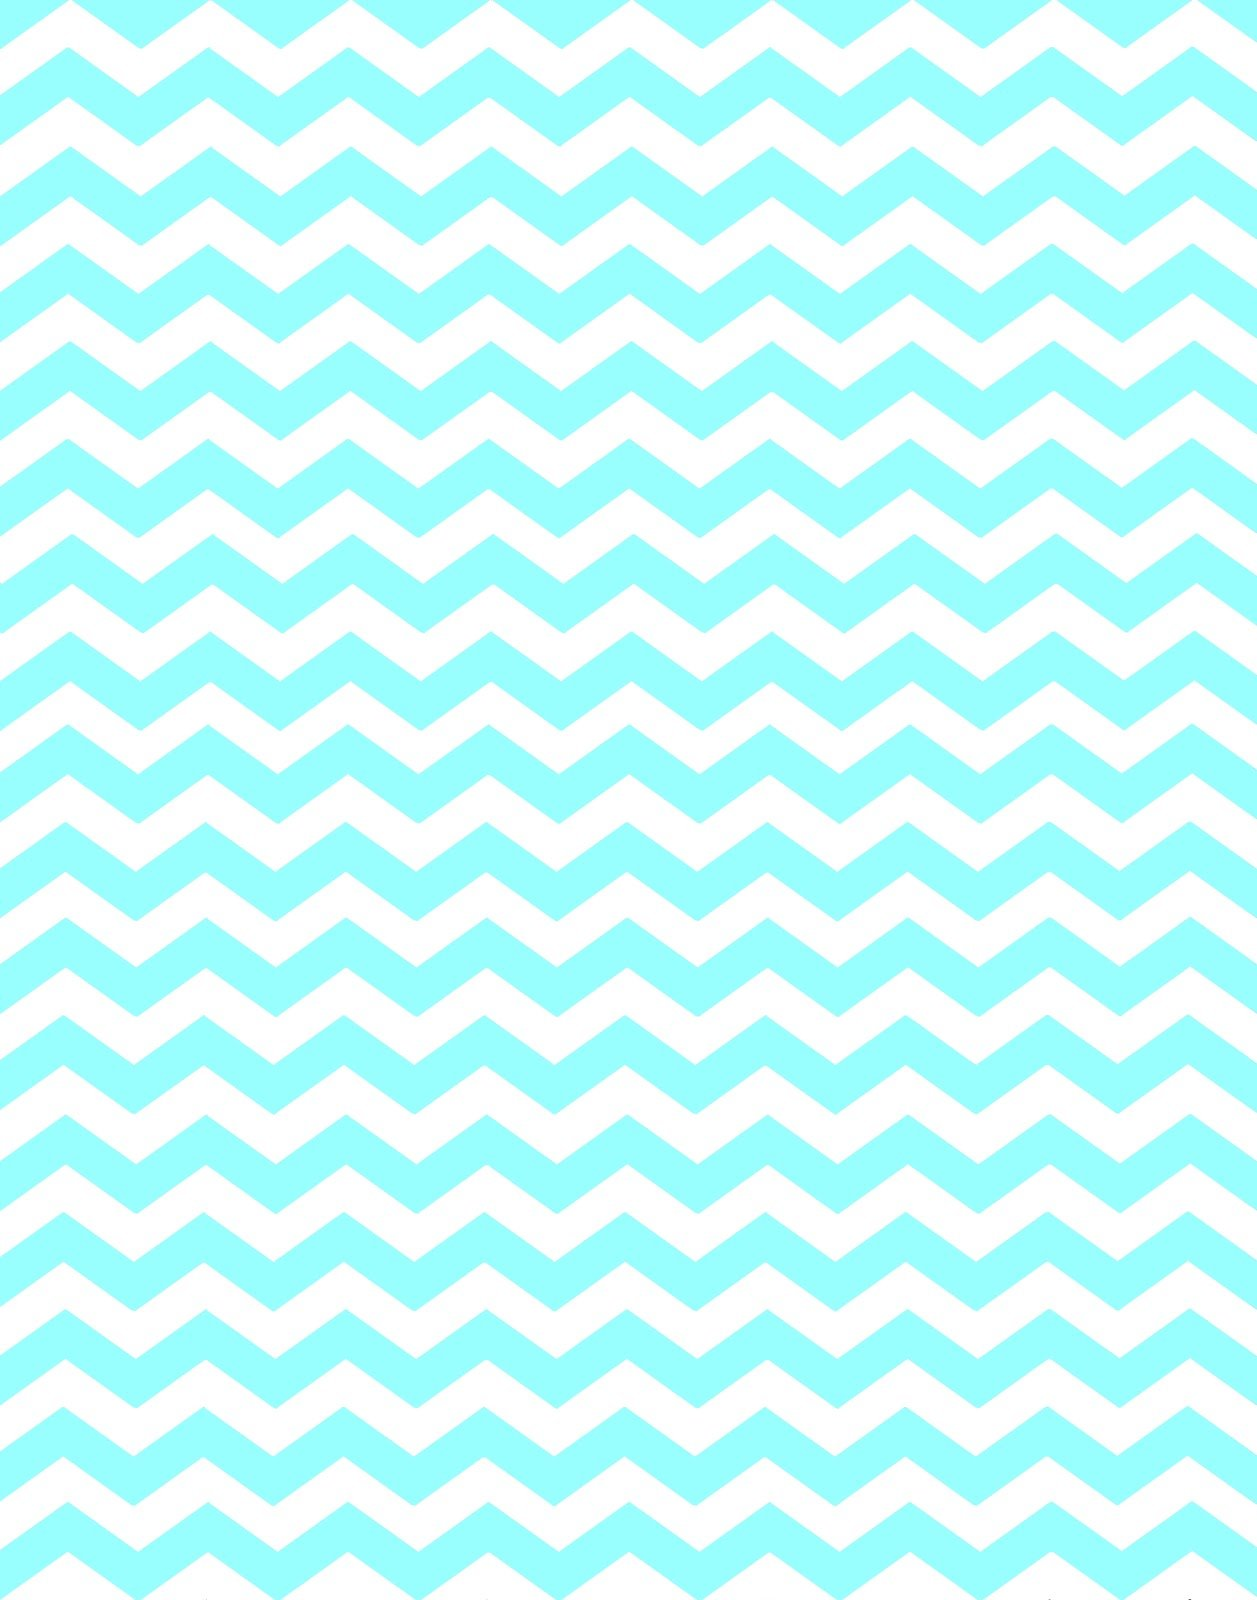 Mint green chevron background